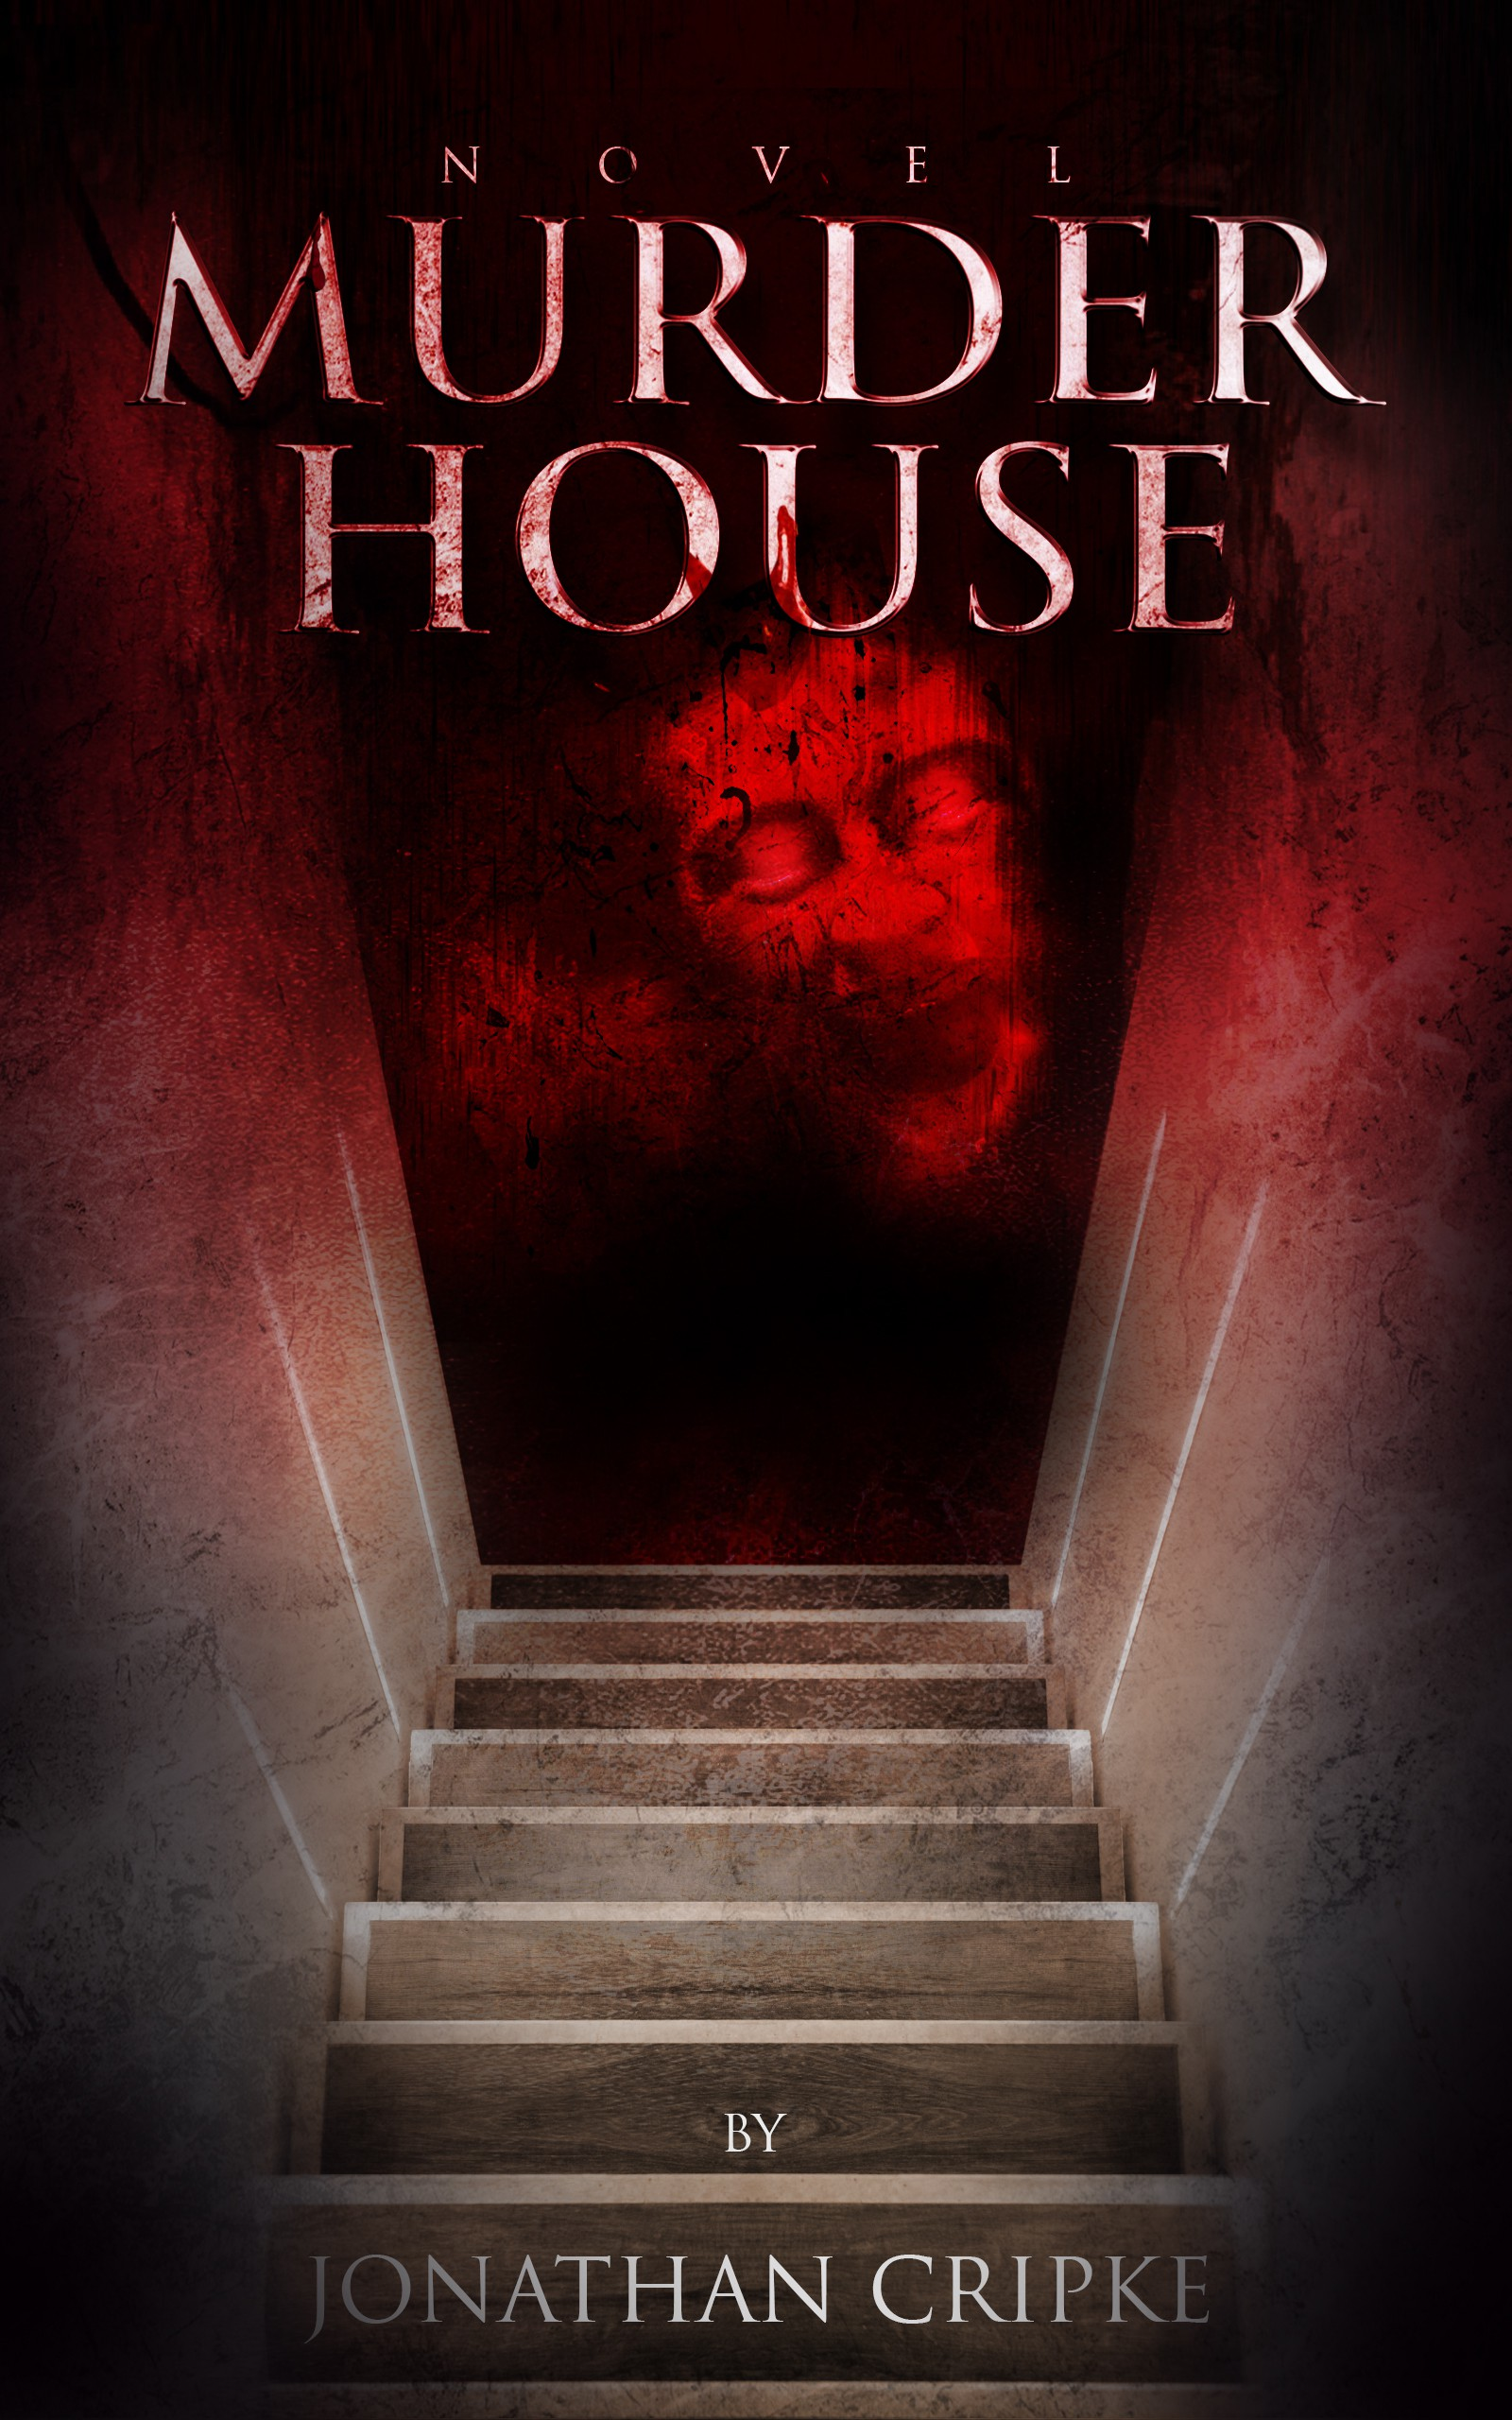 """Name of the book is """"Murder House"""""""